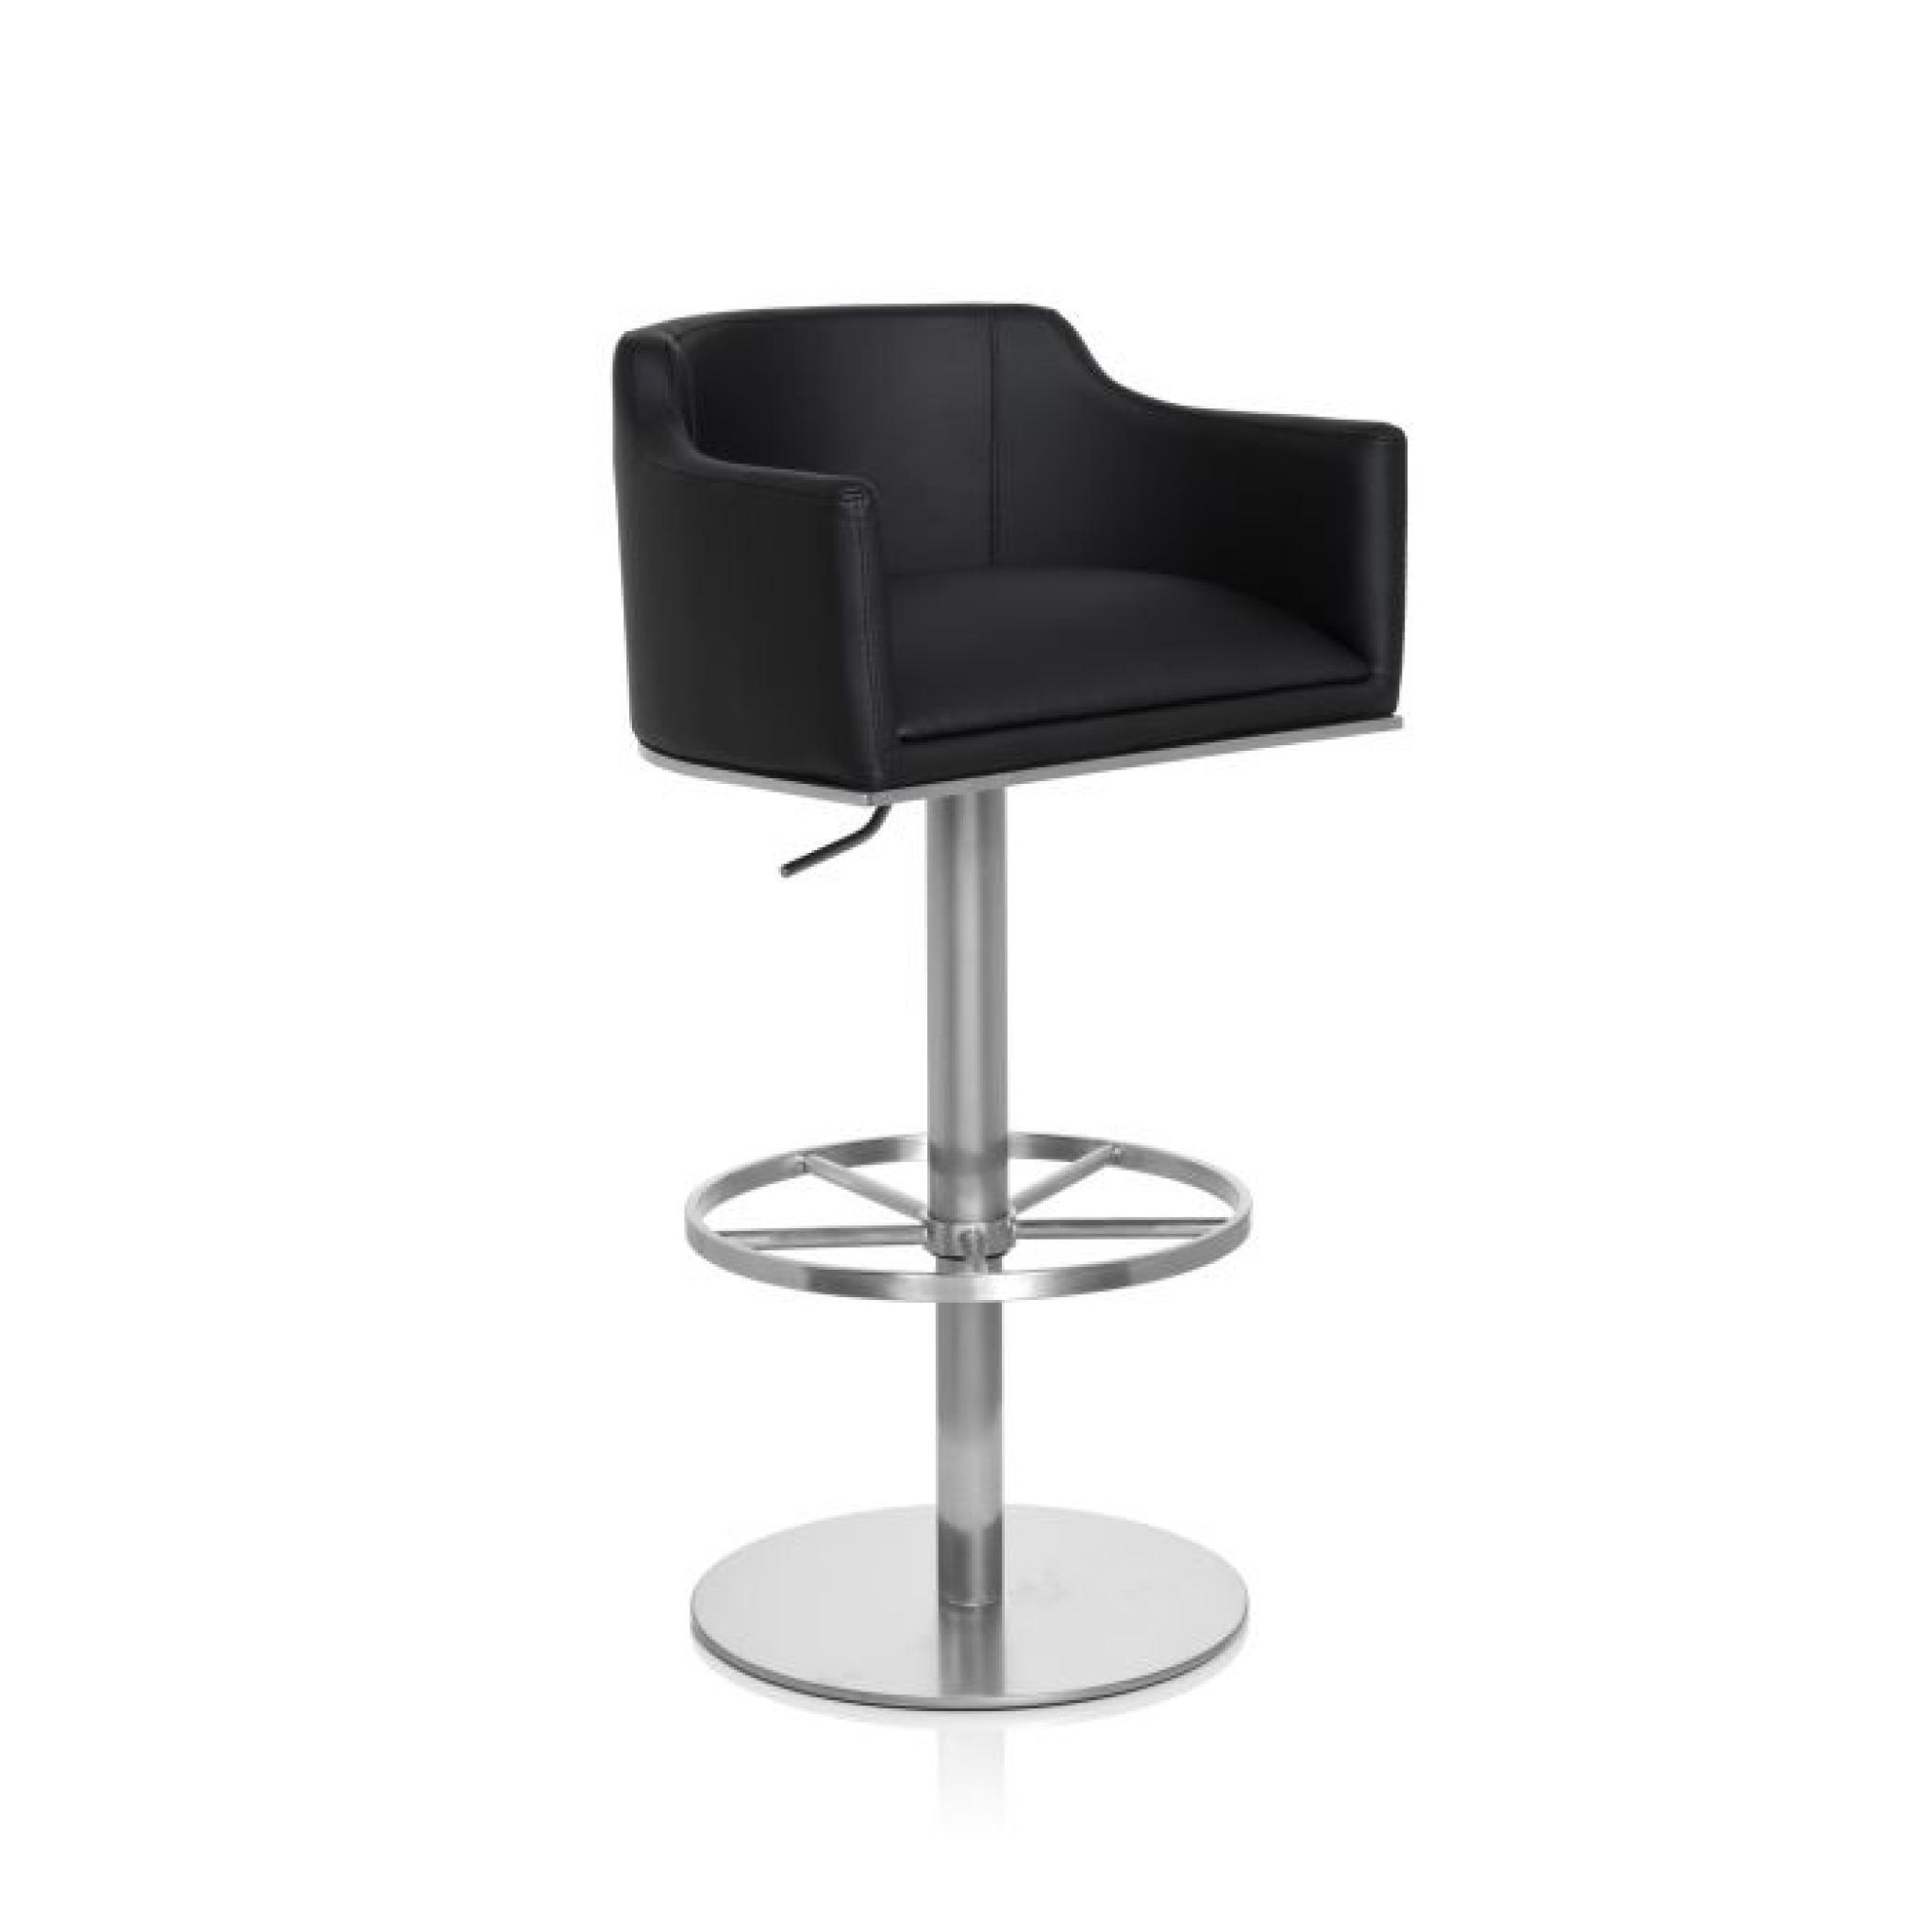 tabouret de bar feli en acier inox bross noir achat. Black Bedroom Furniture Sets. Home Design Ideas